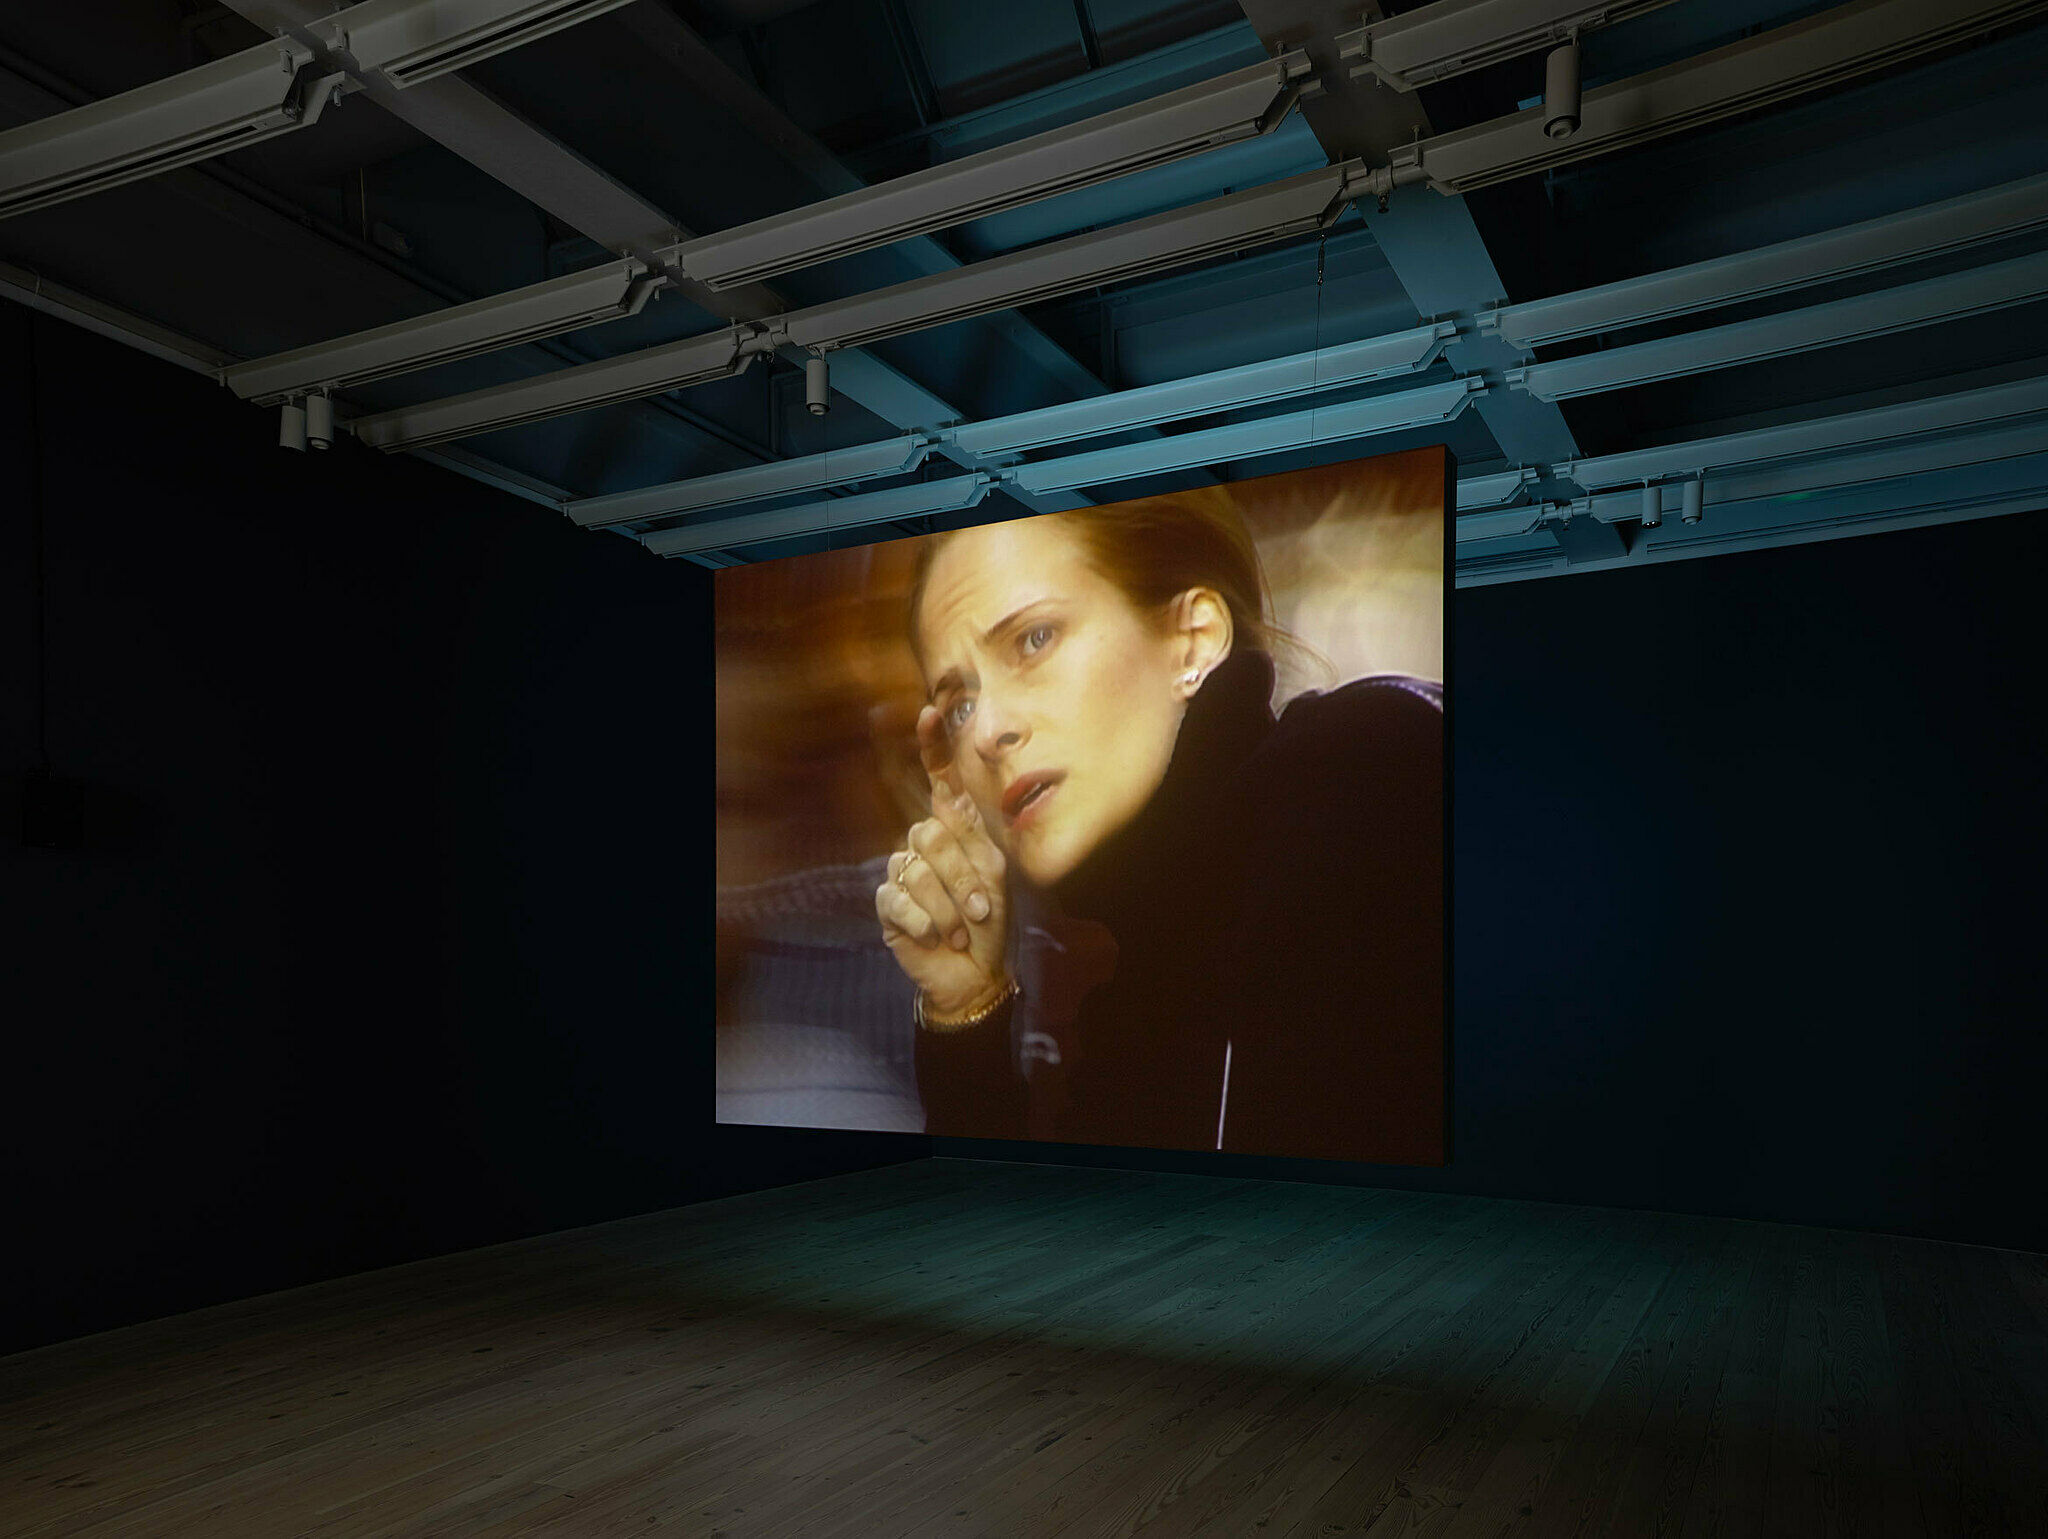 Installation view of Laura Poitras: Astro Noise (Whitney Museum of American Art, New York, February 5—May 1, 2016). Photograph by Ronald Amstutz